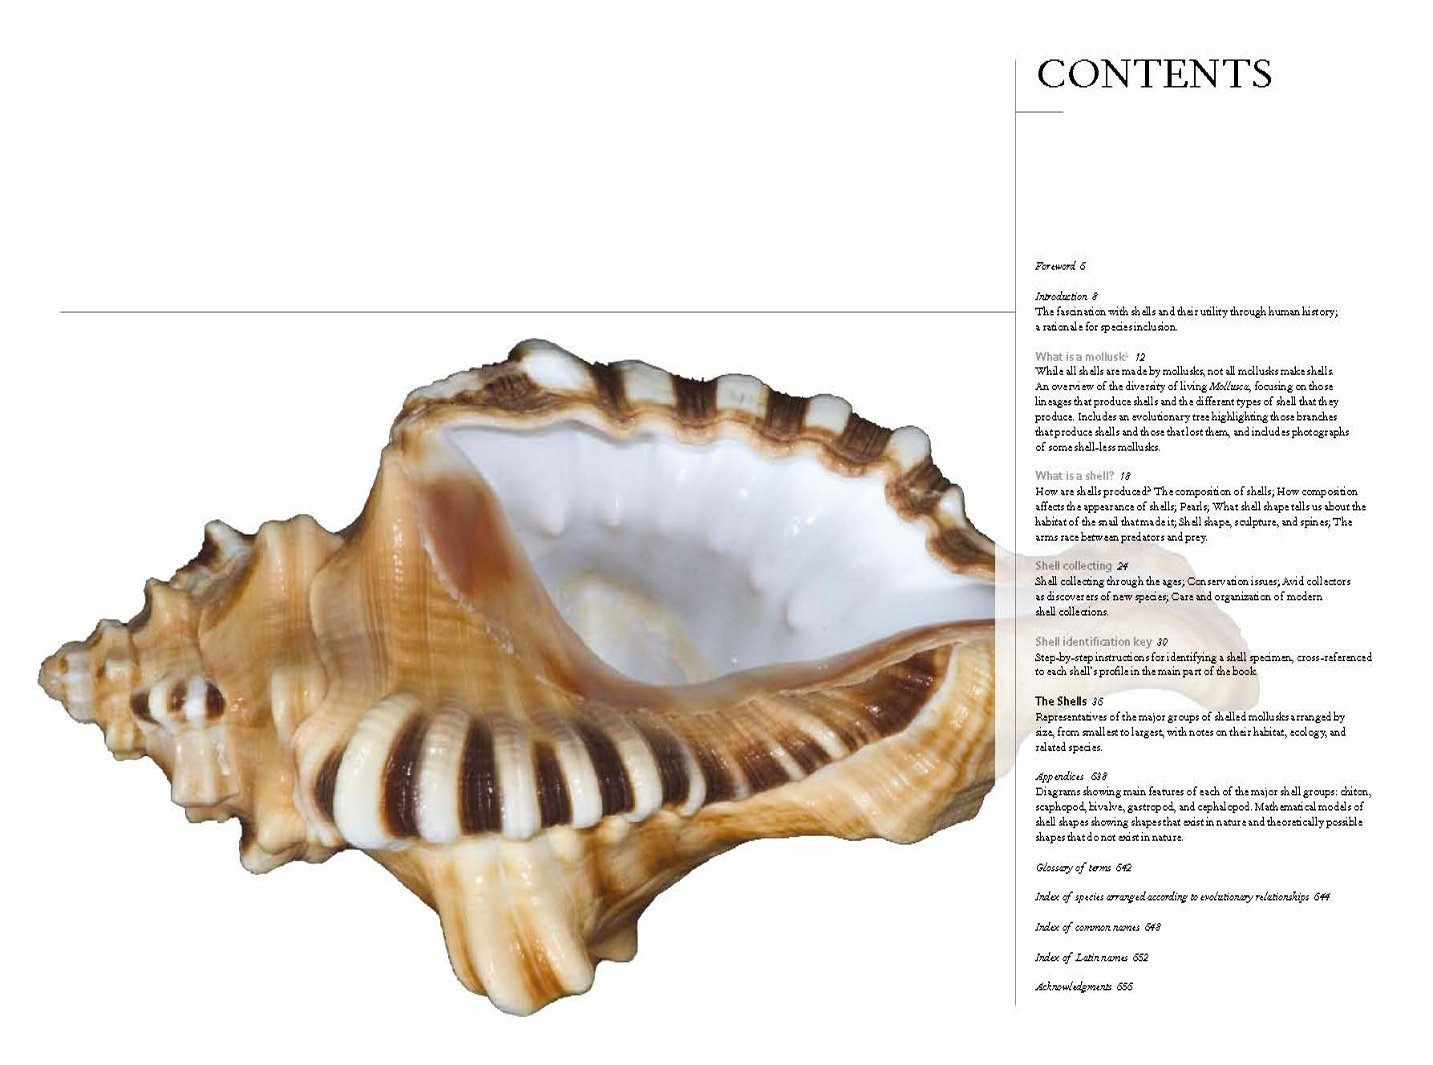 The Book Of Shells: A Lifesize Guide To Identifying And Classifying Six  Hundred Seashells: M G Harasewych, Fabio Moretzsohn: 9780226315775:  Amazon: